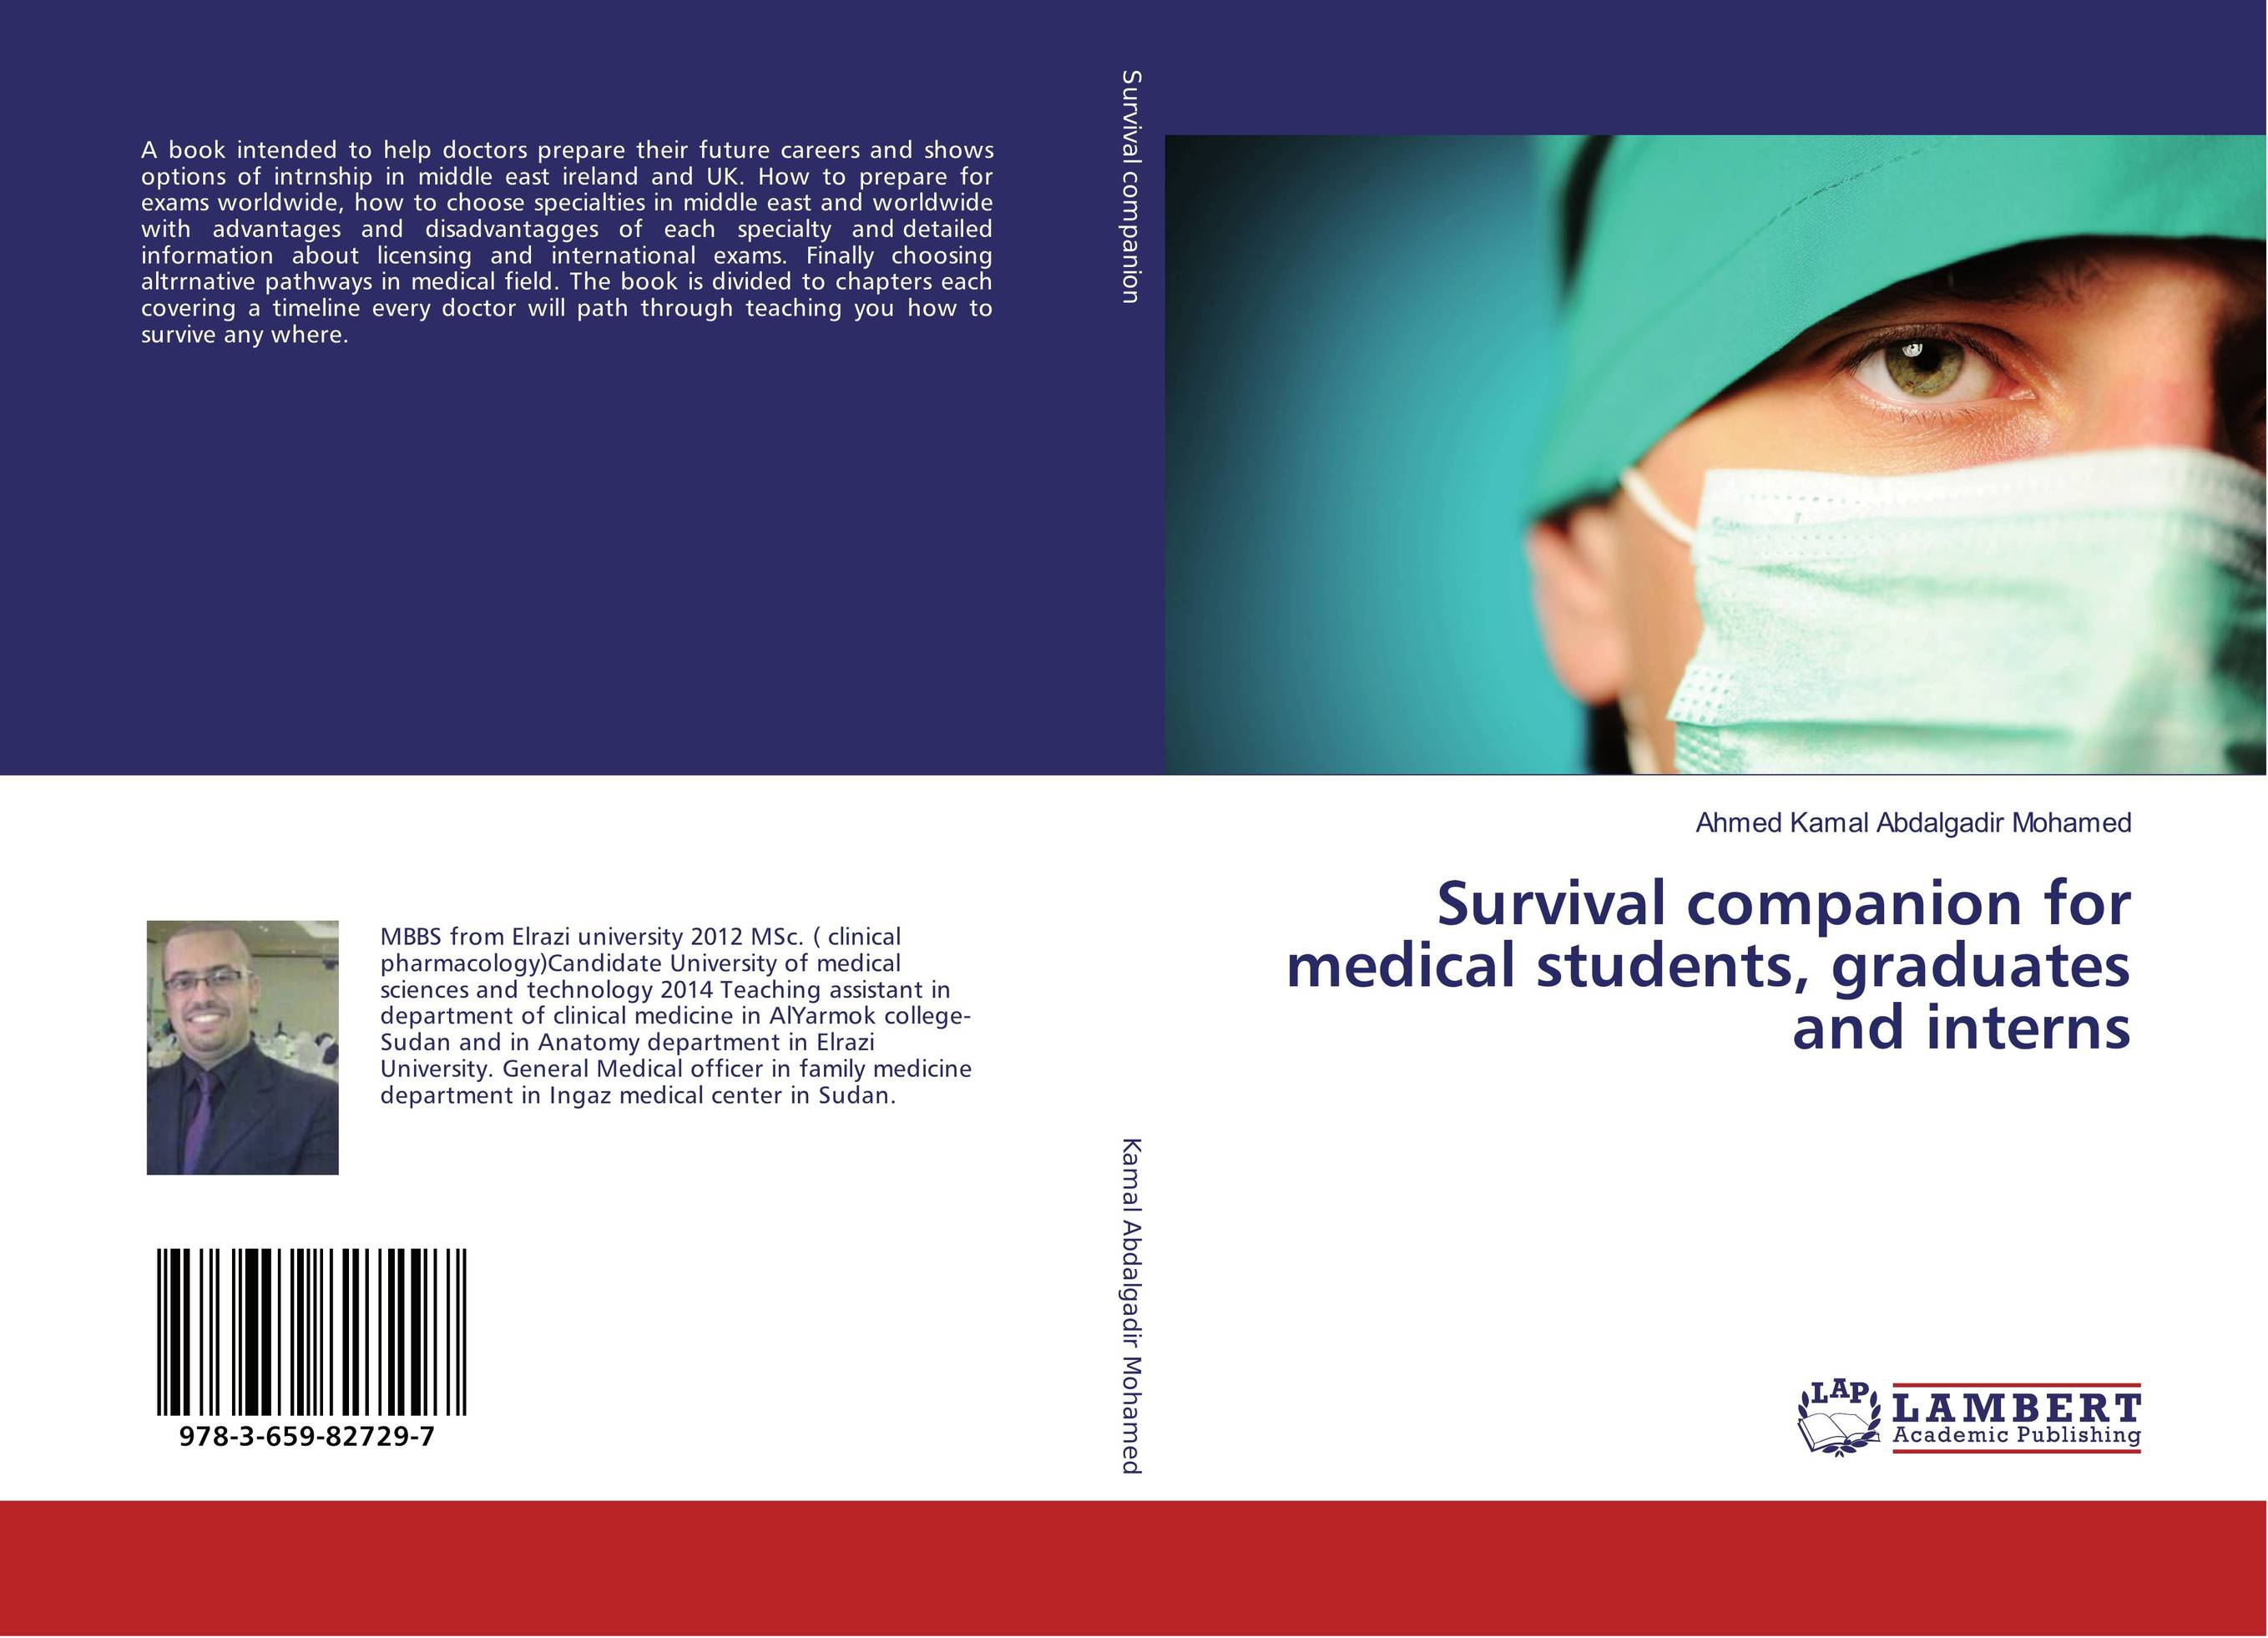 Survival companion for medical students, graduates and interns